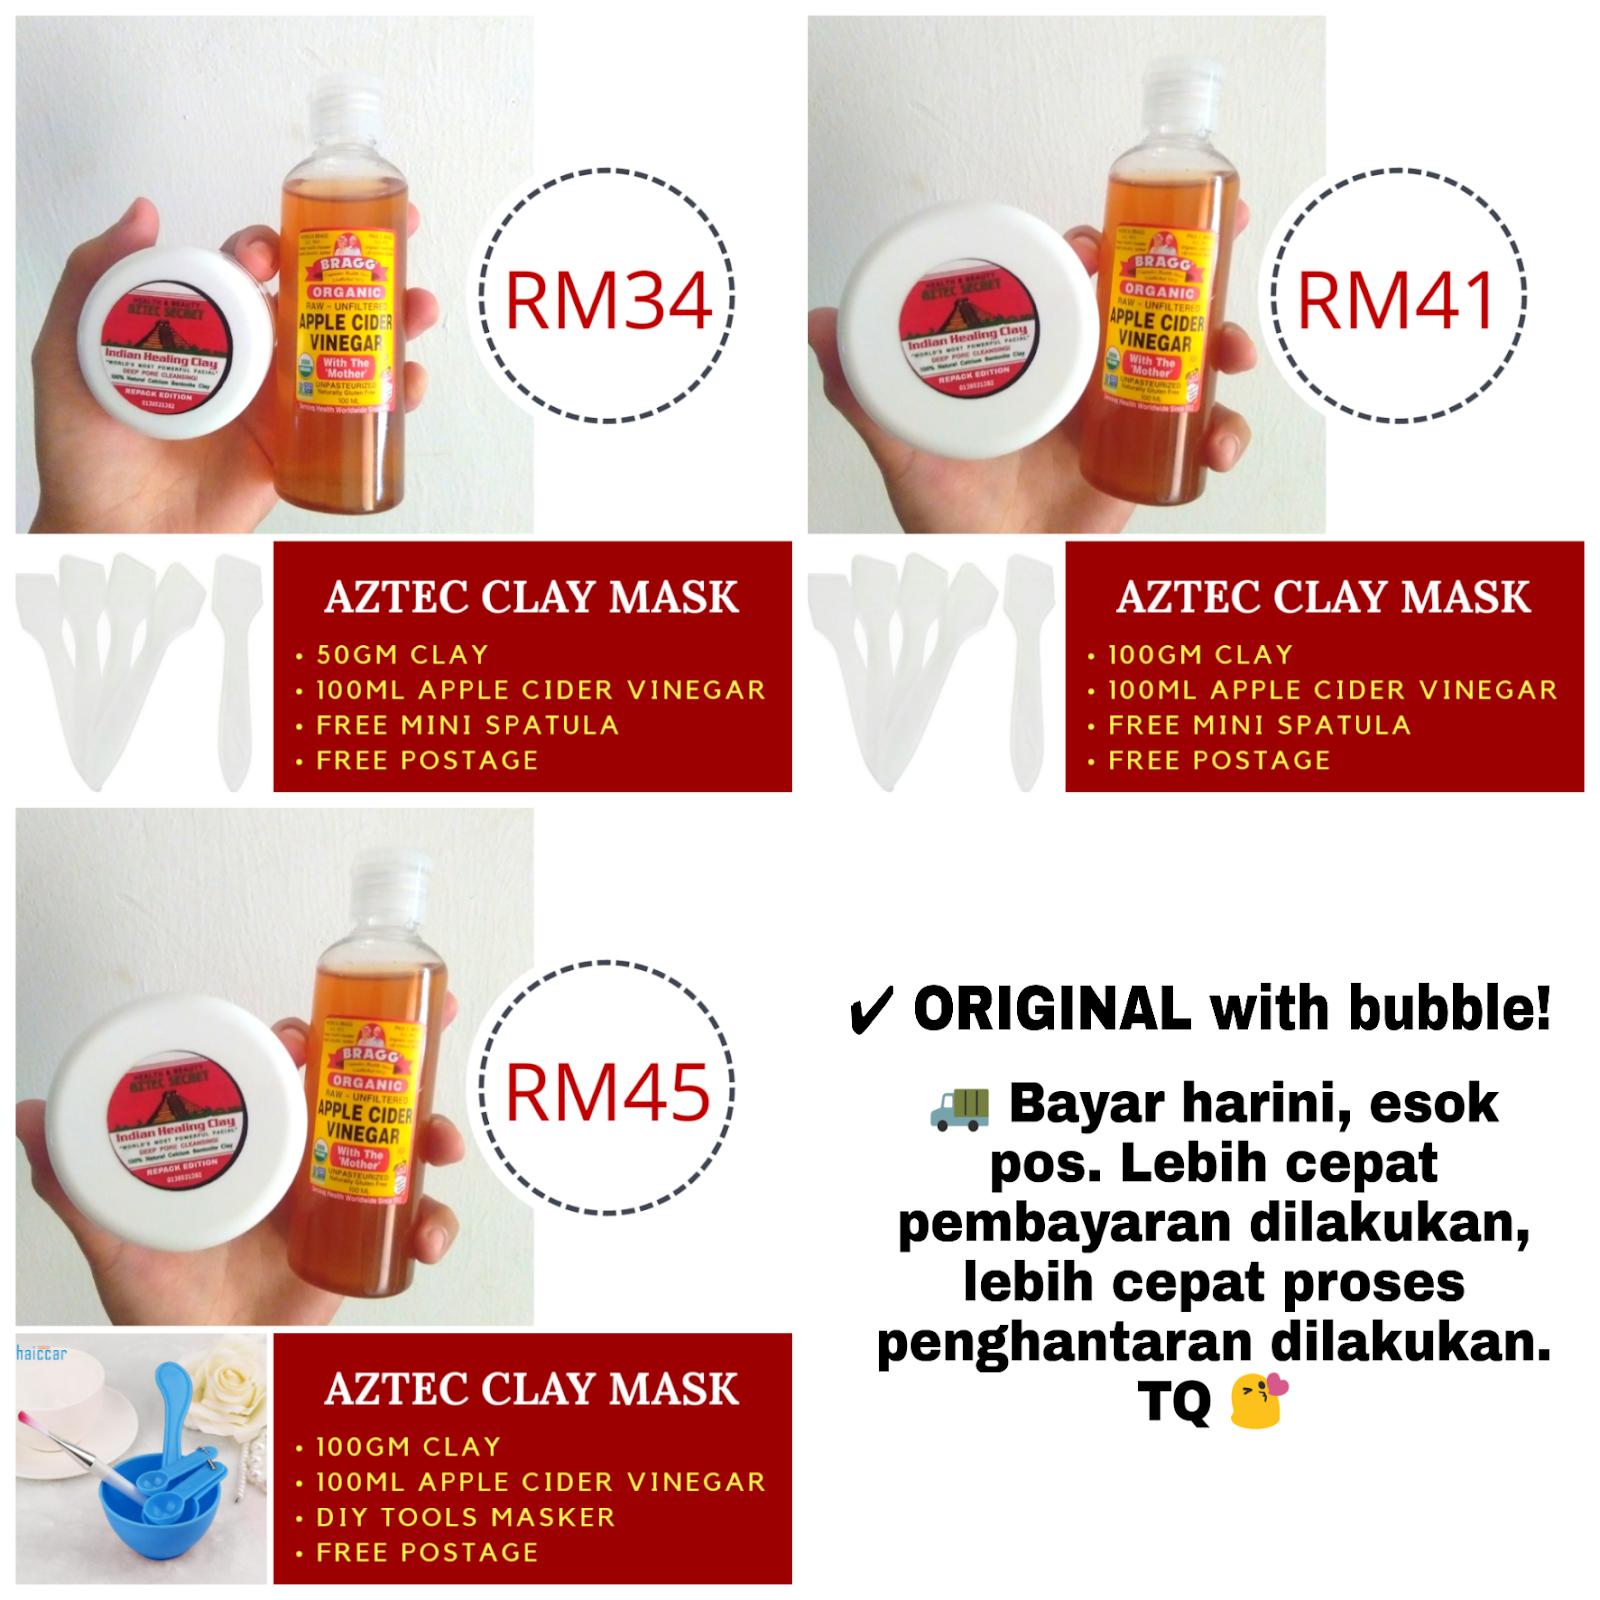 Beli Aztec Clay Mask Sini